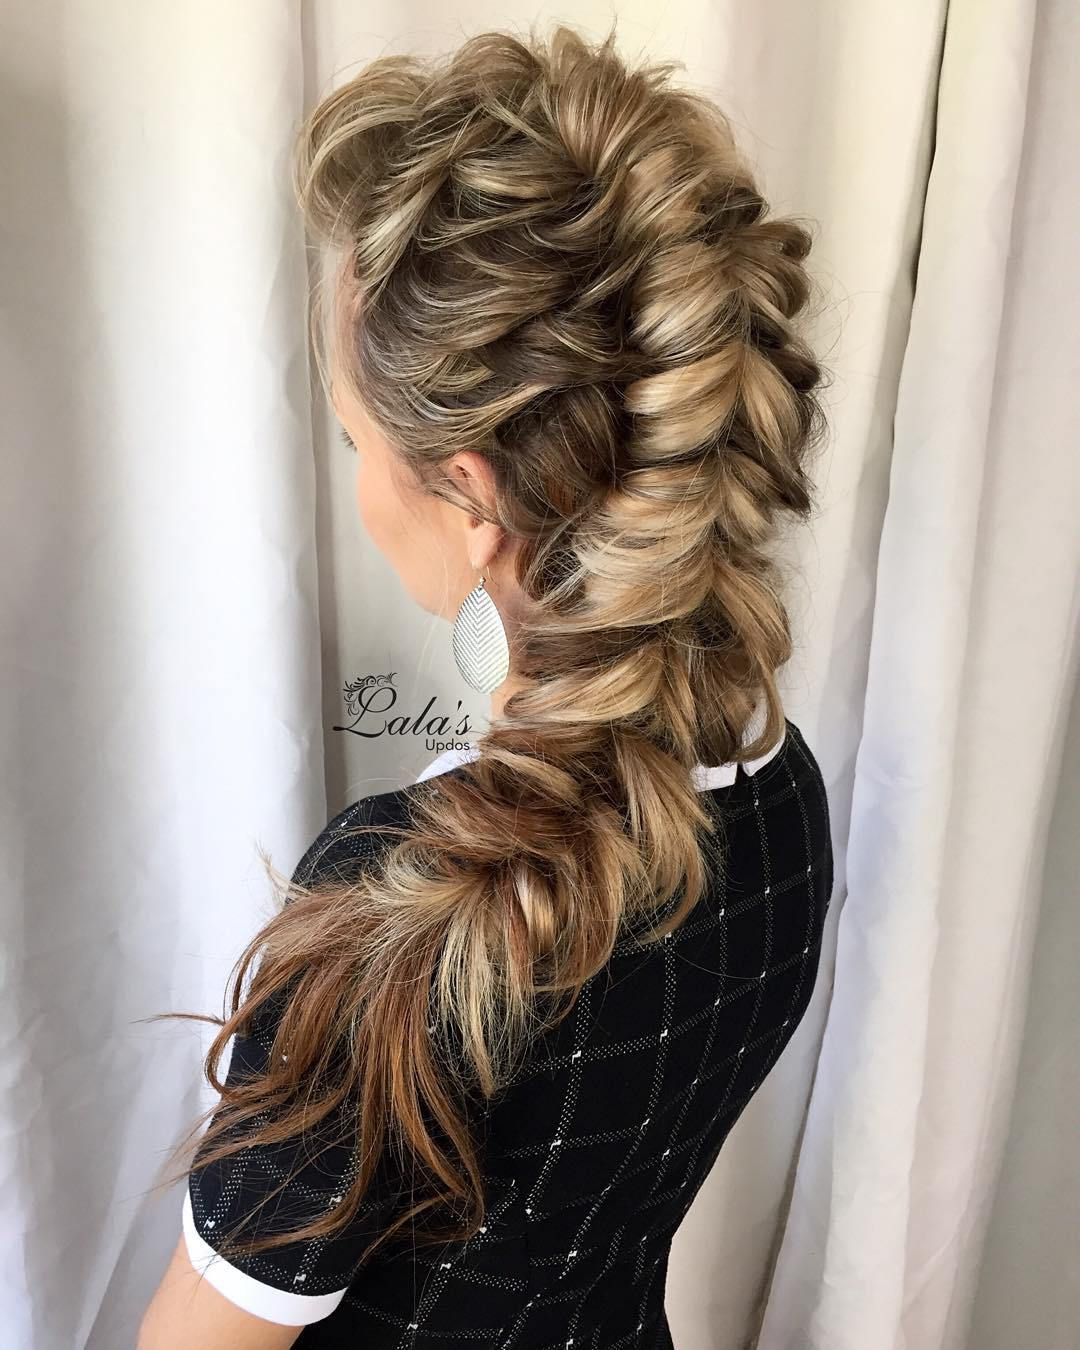 18-mohawk-fishtail-braid